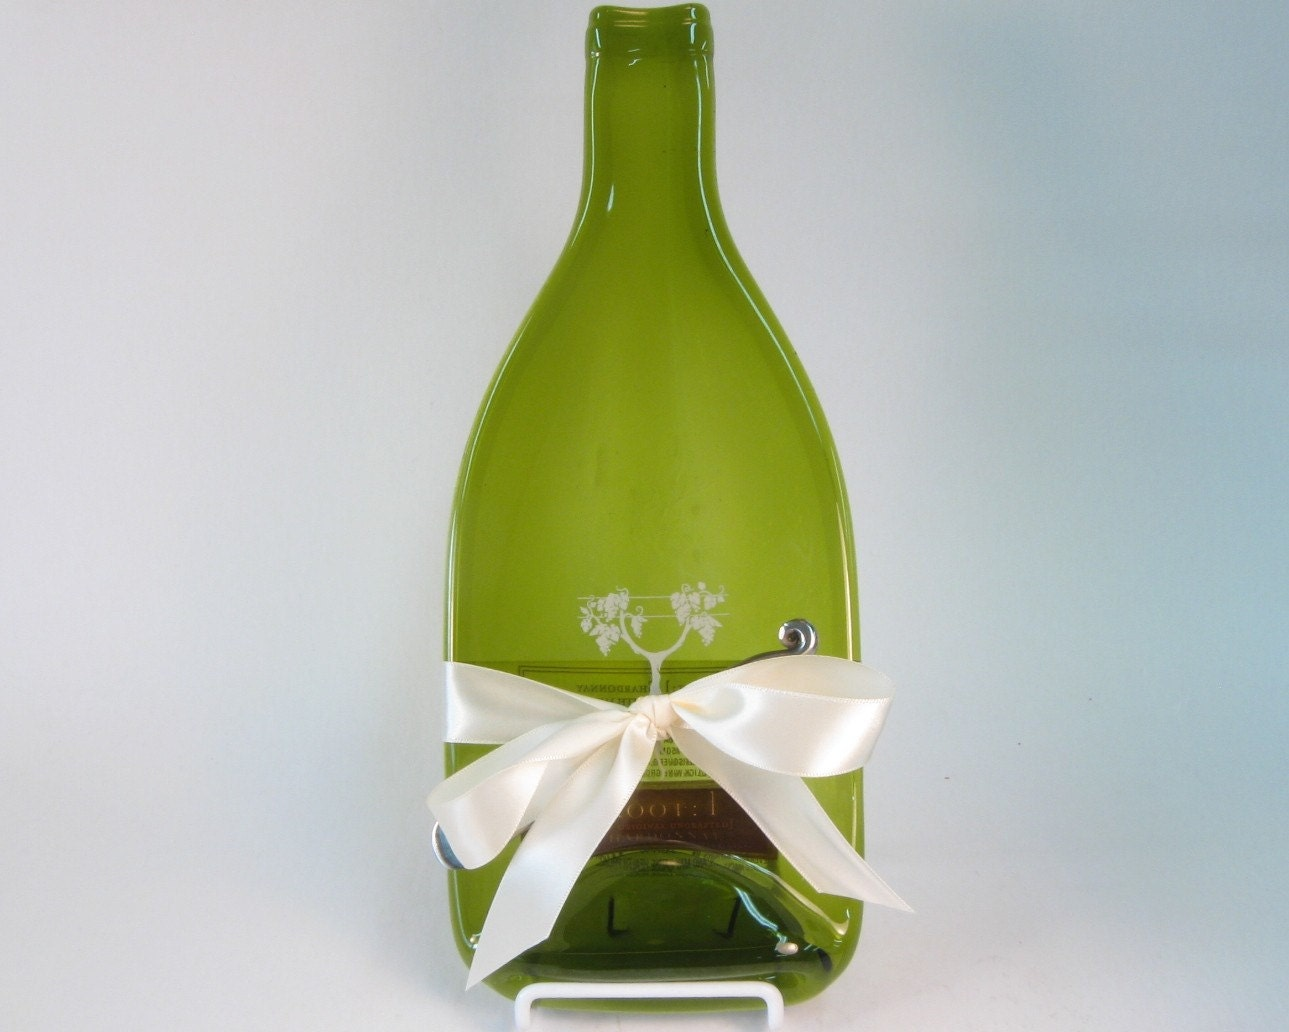 Melted wine bottle cheese plate root by mitchellglassworks on etsy - How do you melt glass bottles ...